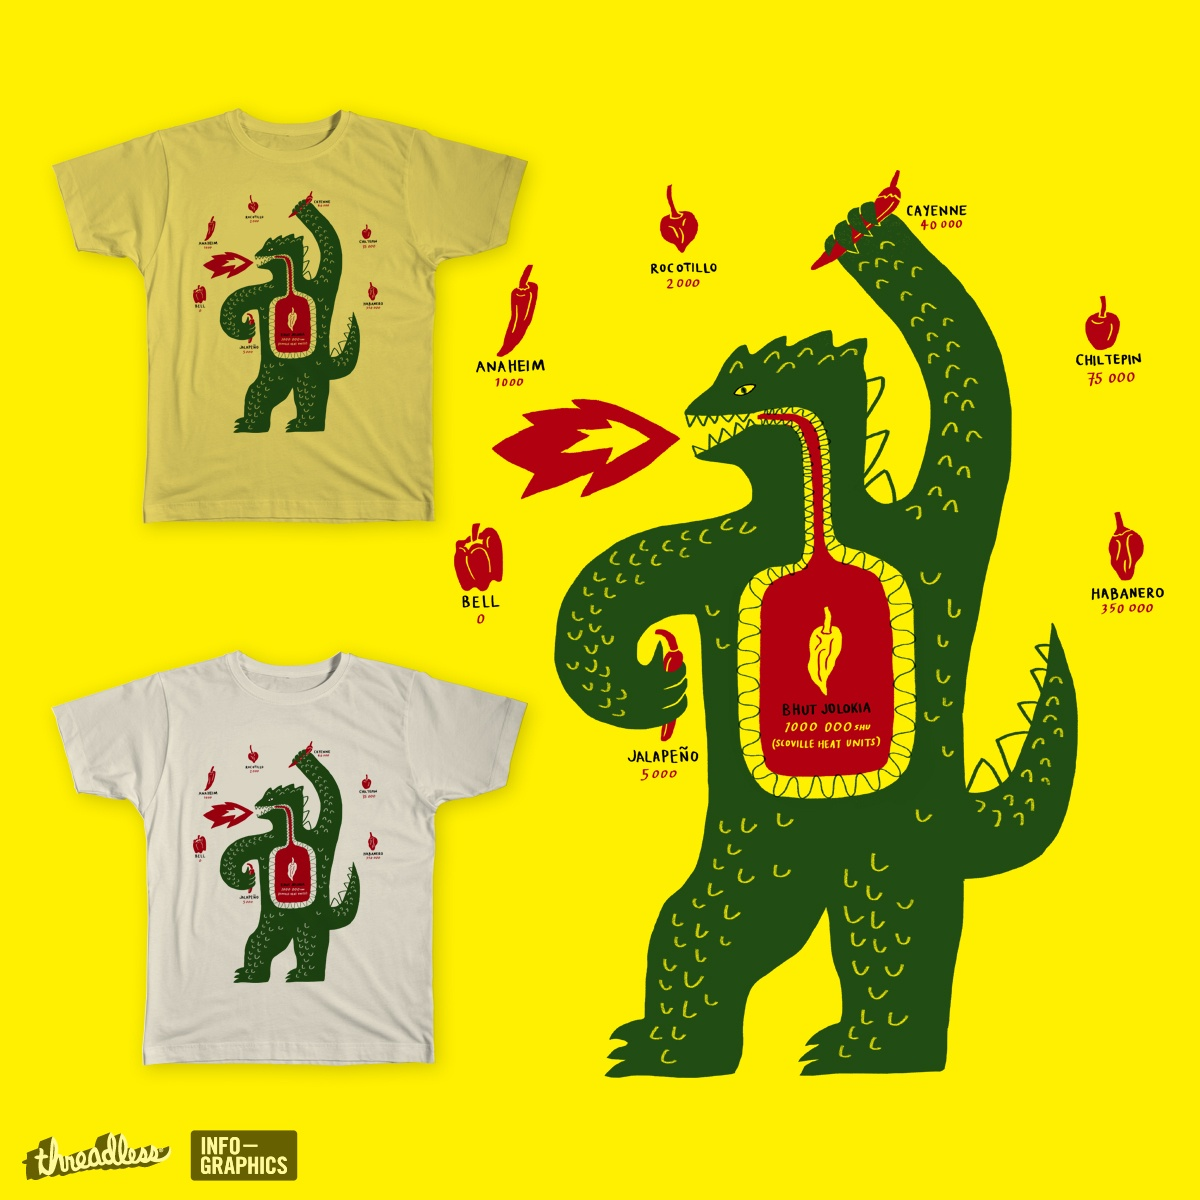 The Scoville Scale, a cool t.